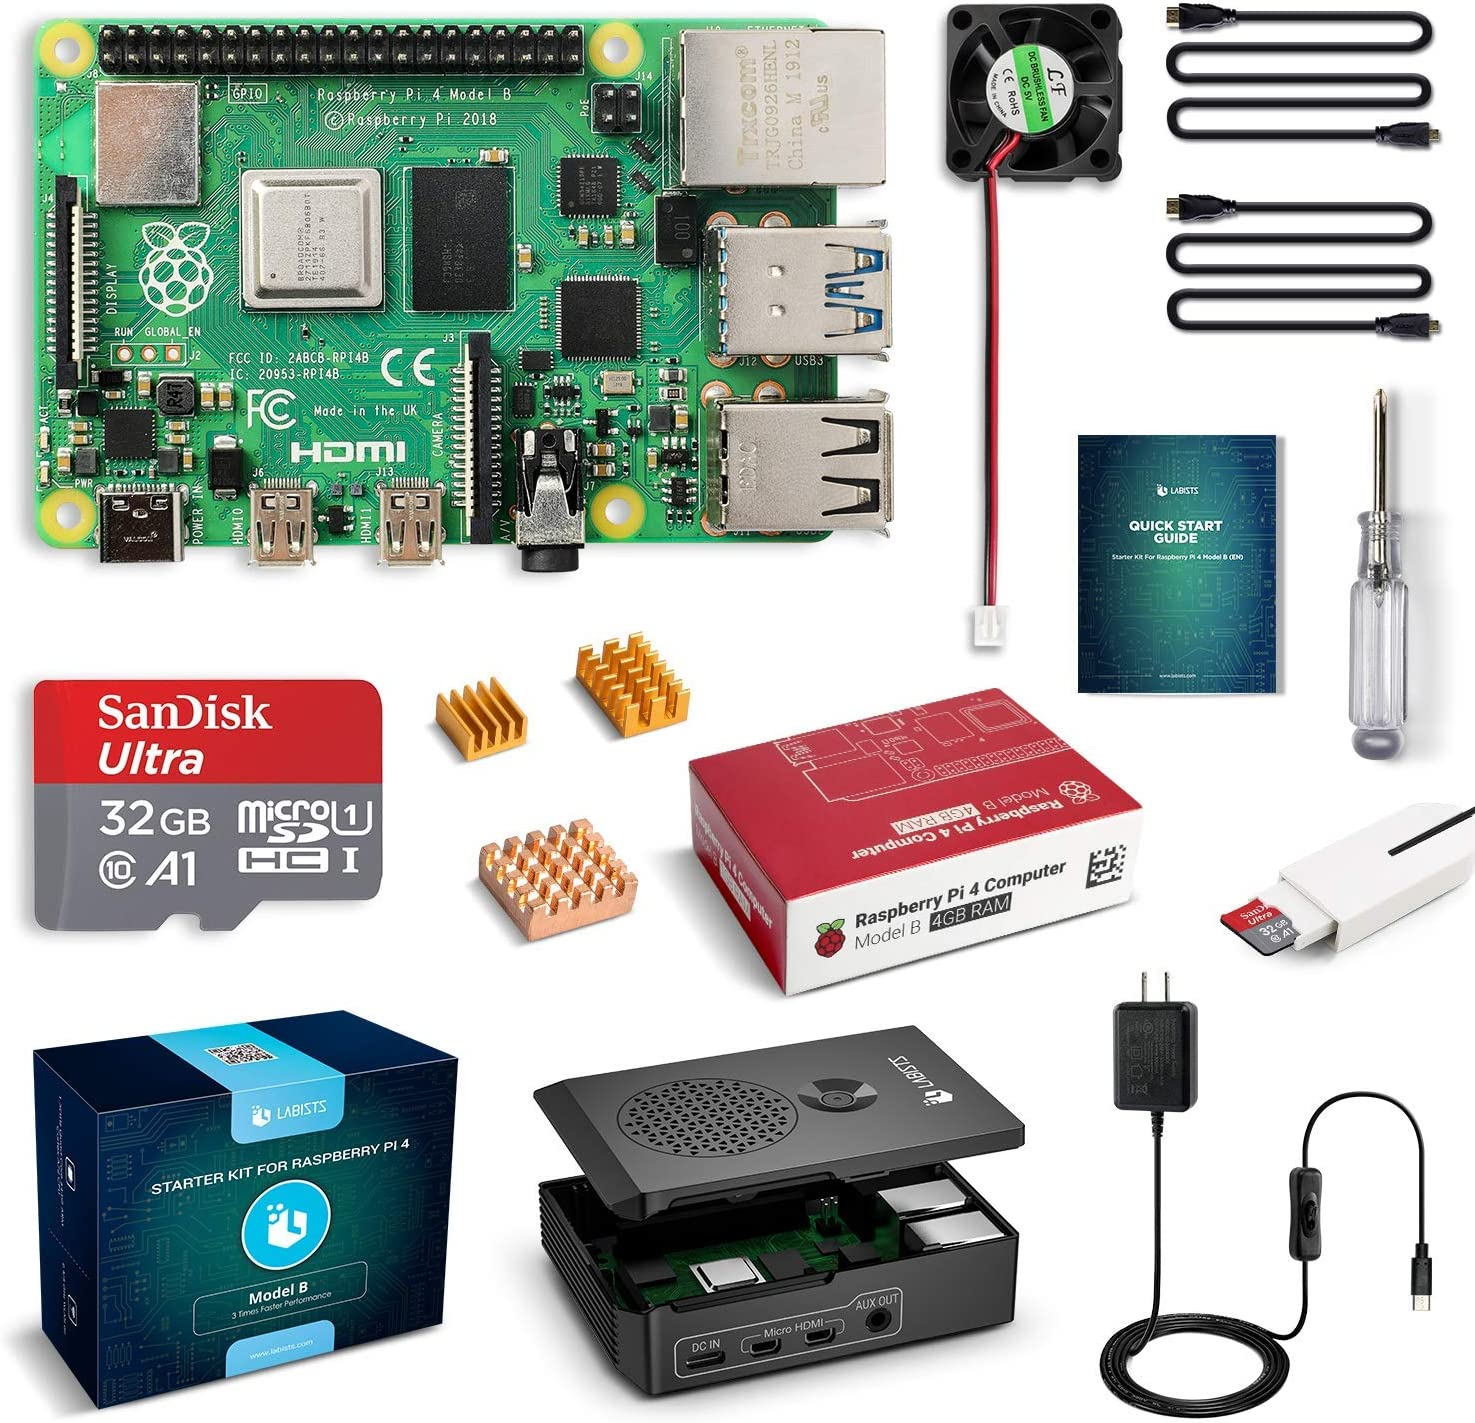 ABOX Raspberry Pi 3 B+ Complete Starter Kit with Model B Plus Motherboard 16GB Micro SD Card NOOBS, 5V 3A...